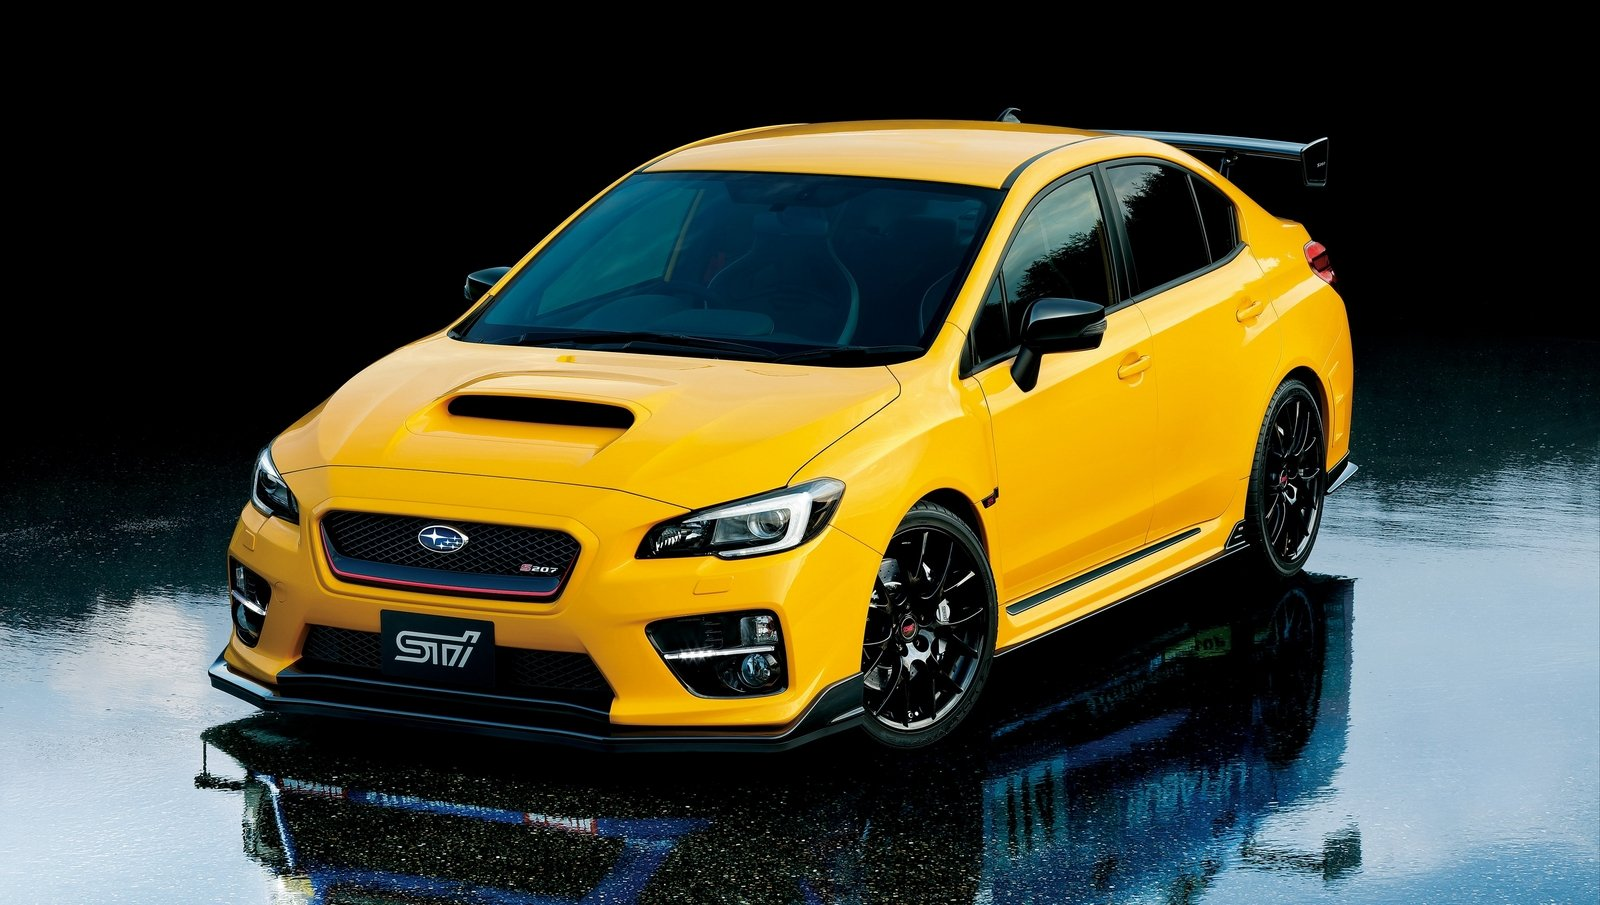 2016 subaru wrx sti s207 limited edition picture 653302 car review top speed. Black Bedroom Furniture Sets. Home Design Ideas